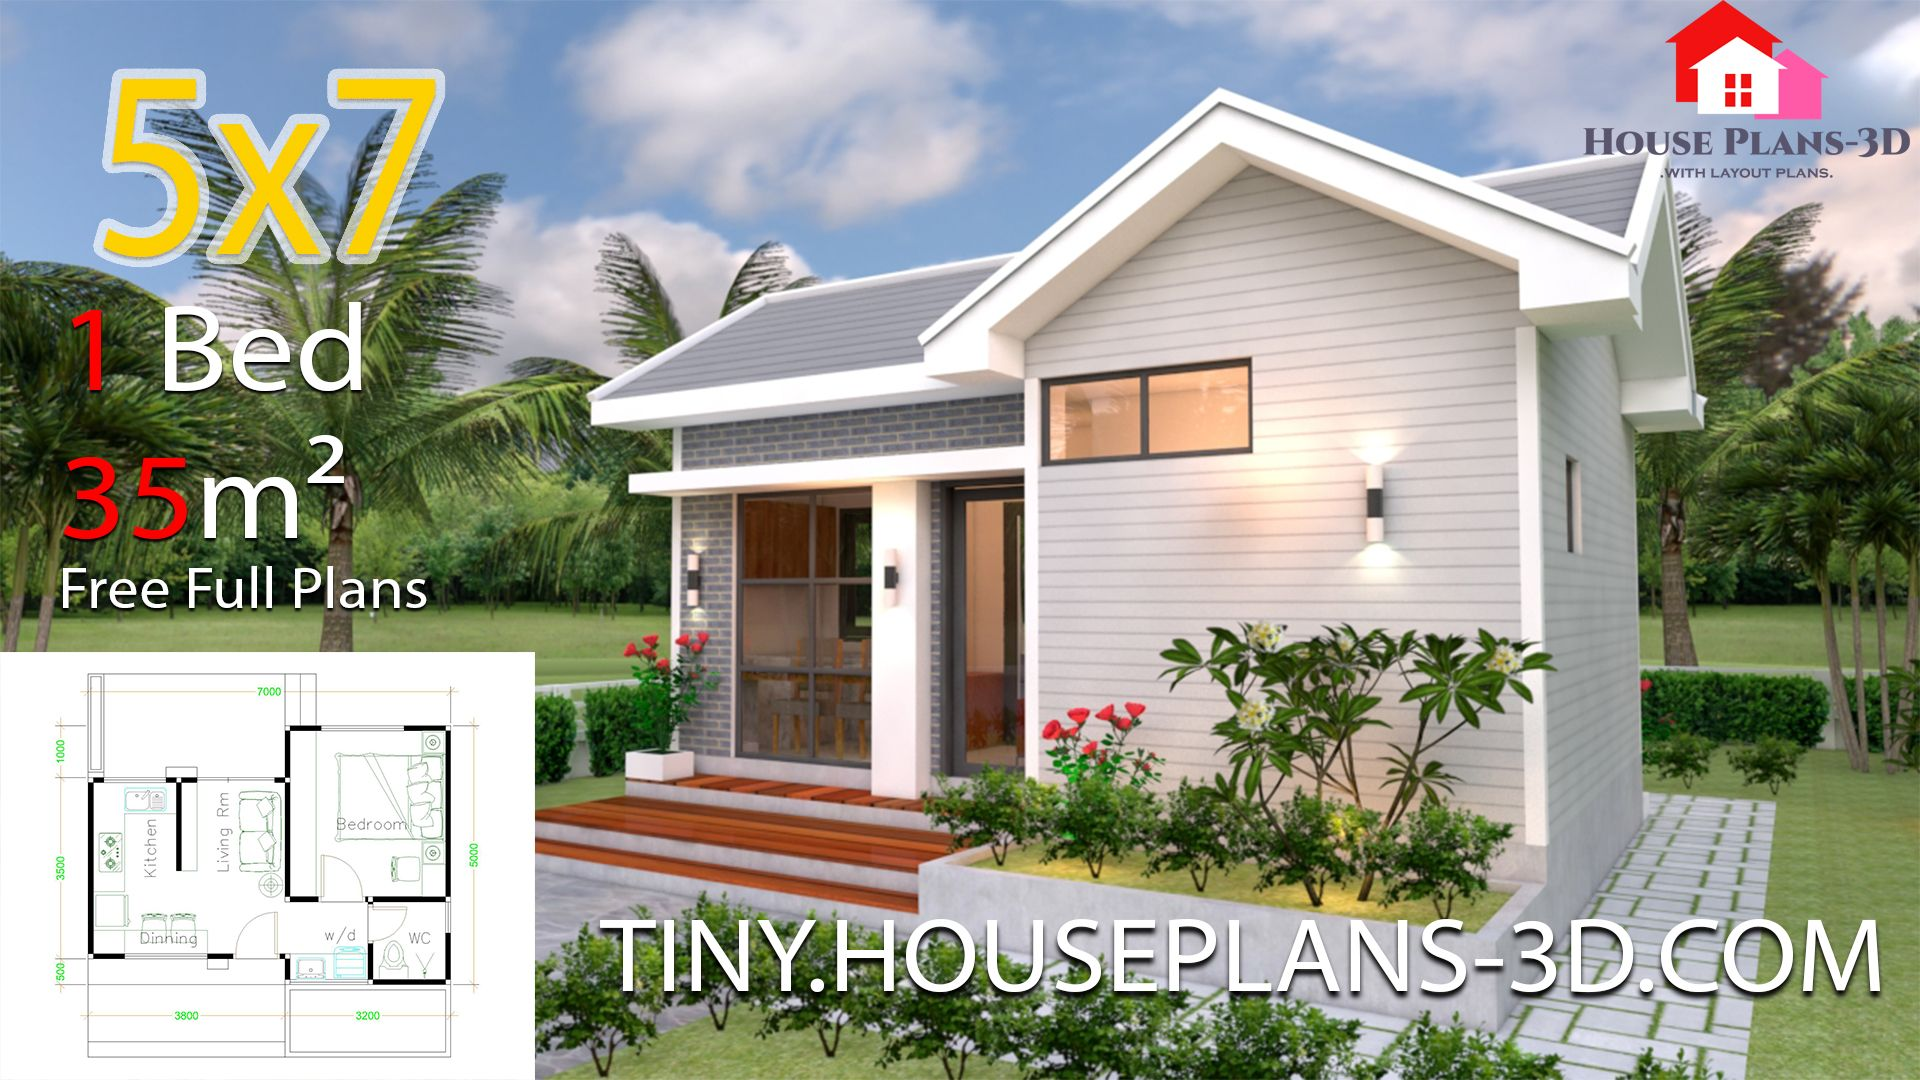 3d Small House 21 Beautiful Categories Small 3 Bedroom House Plans | Small  house design plans, Tiny house plans, Small house plans